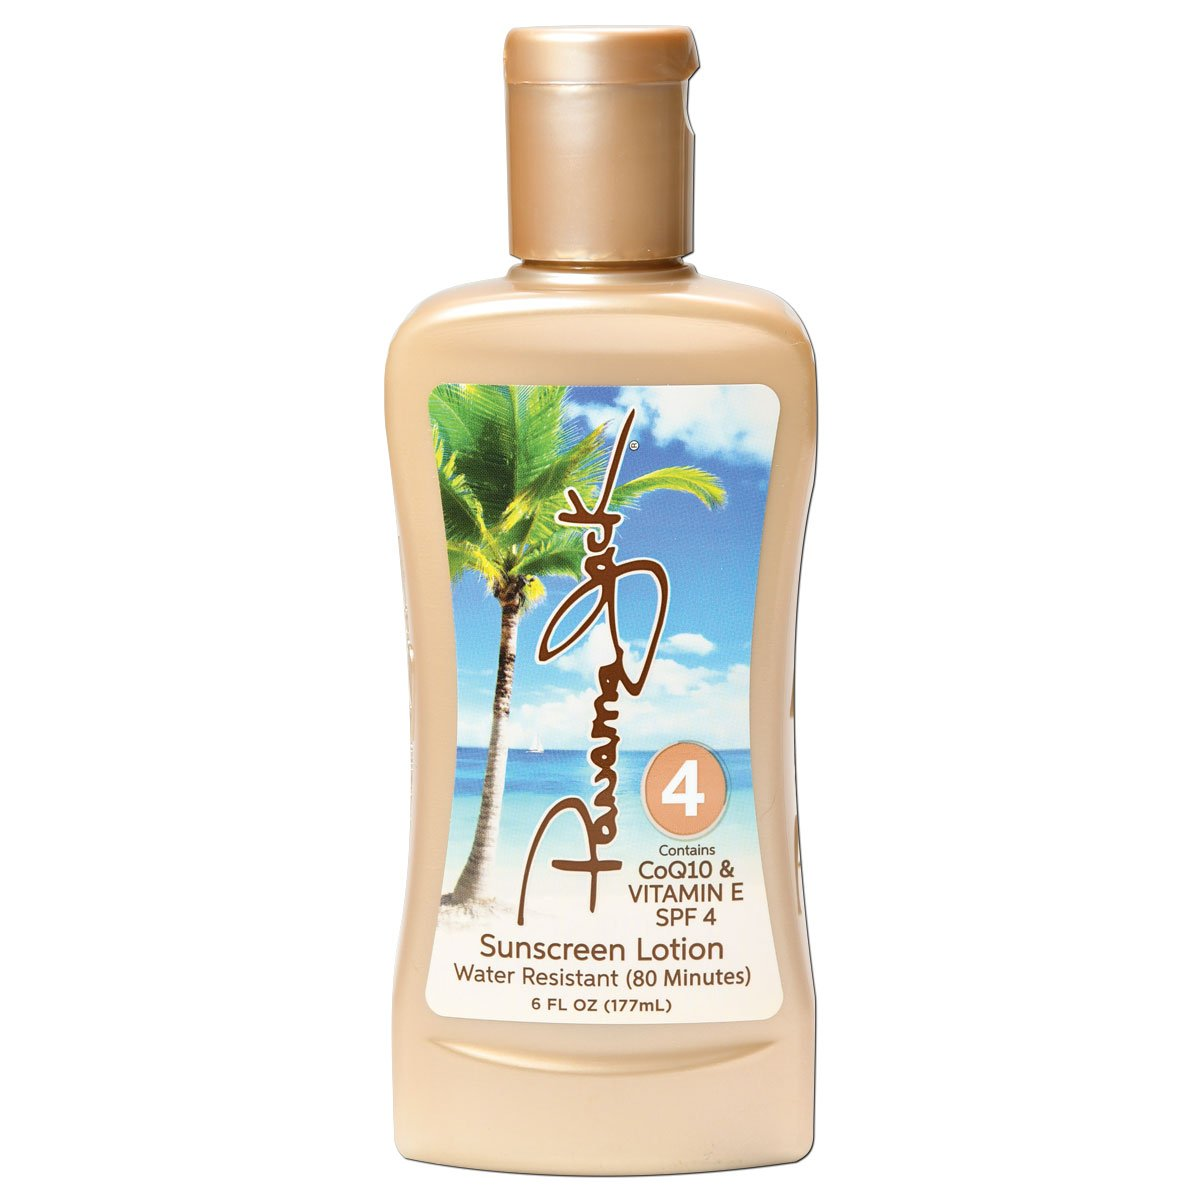 Top 10 Best Outdoor Tanning Lotions For Fair Skin 2020 Reviews 4